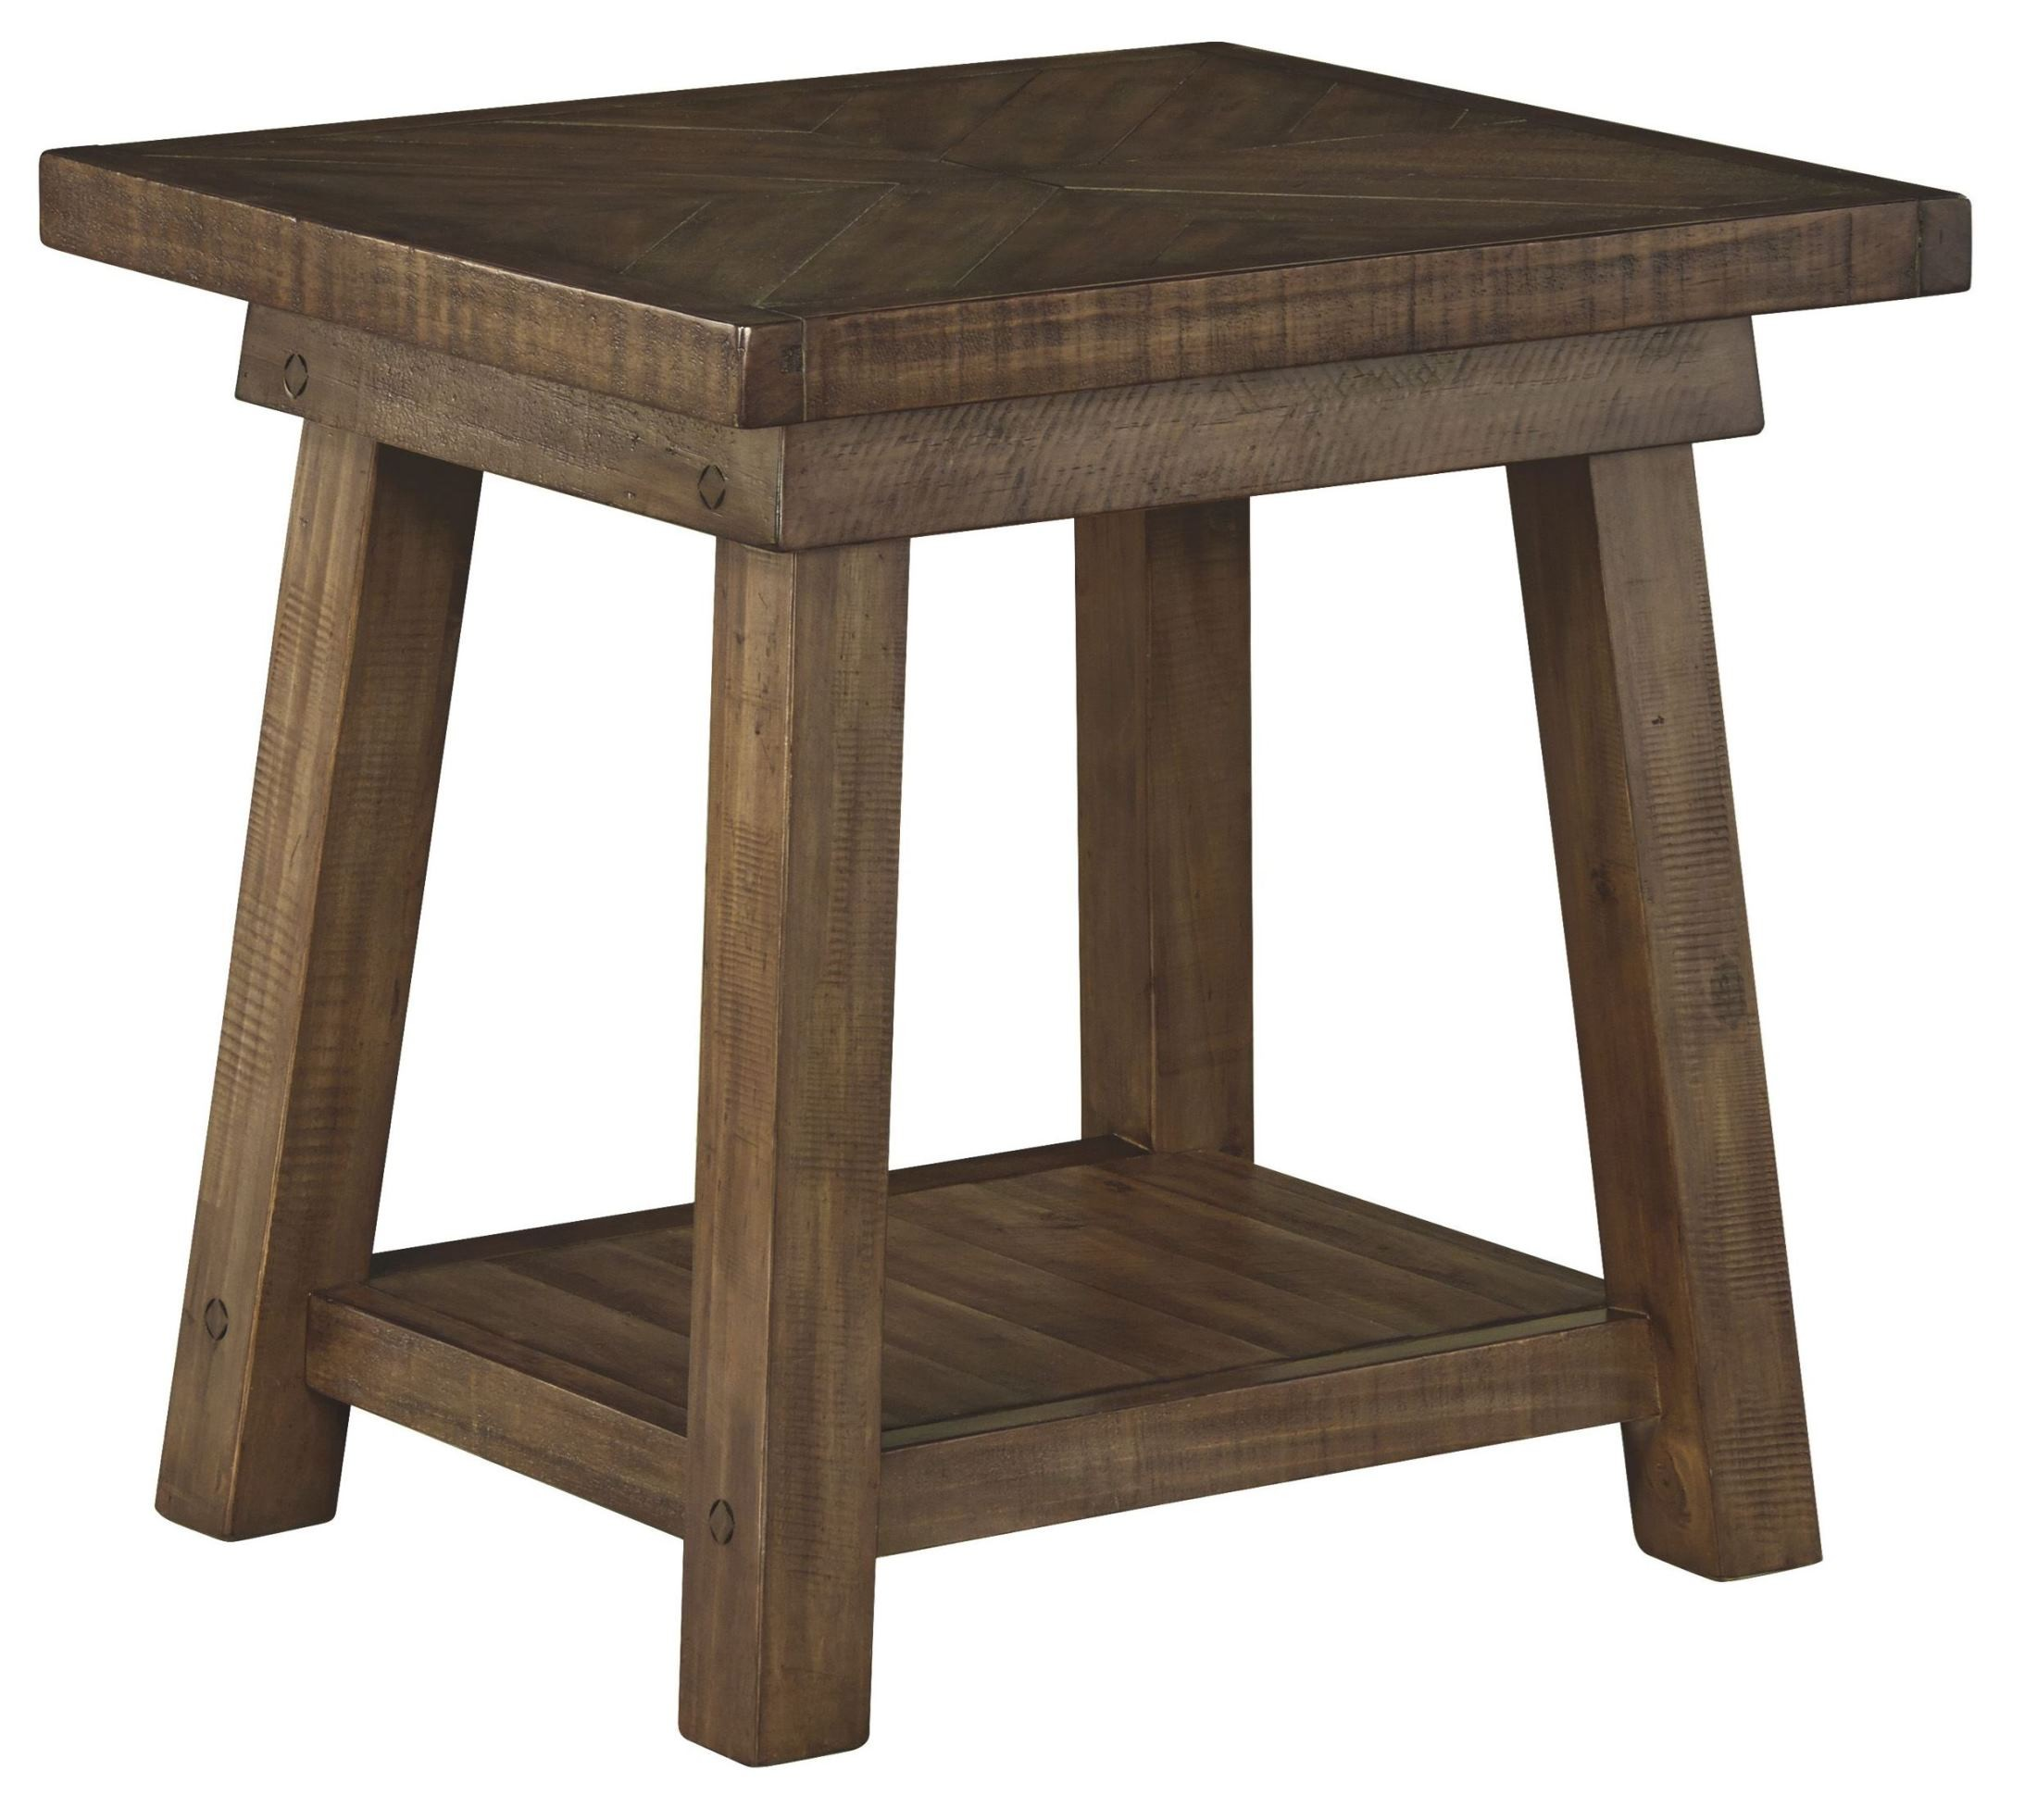 Dondie rustic brown rectangular end table t ashley